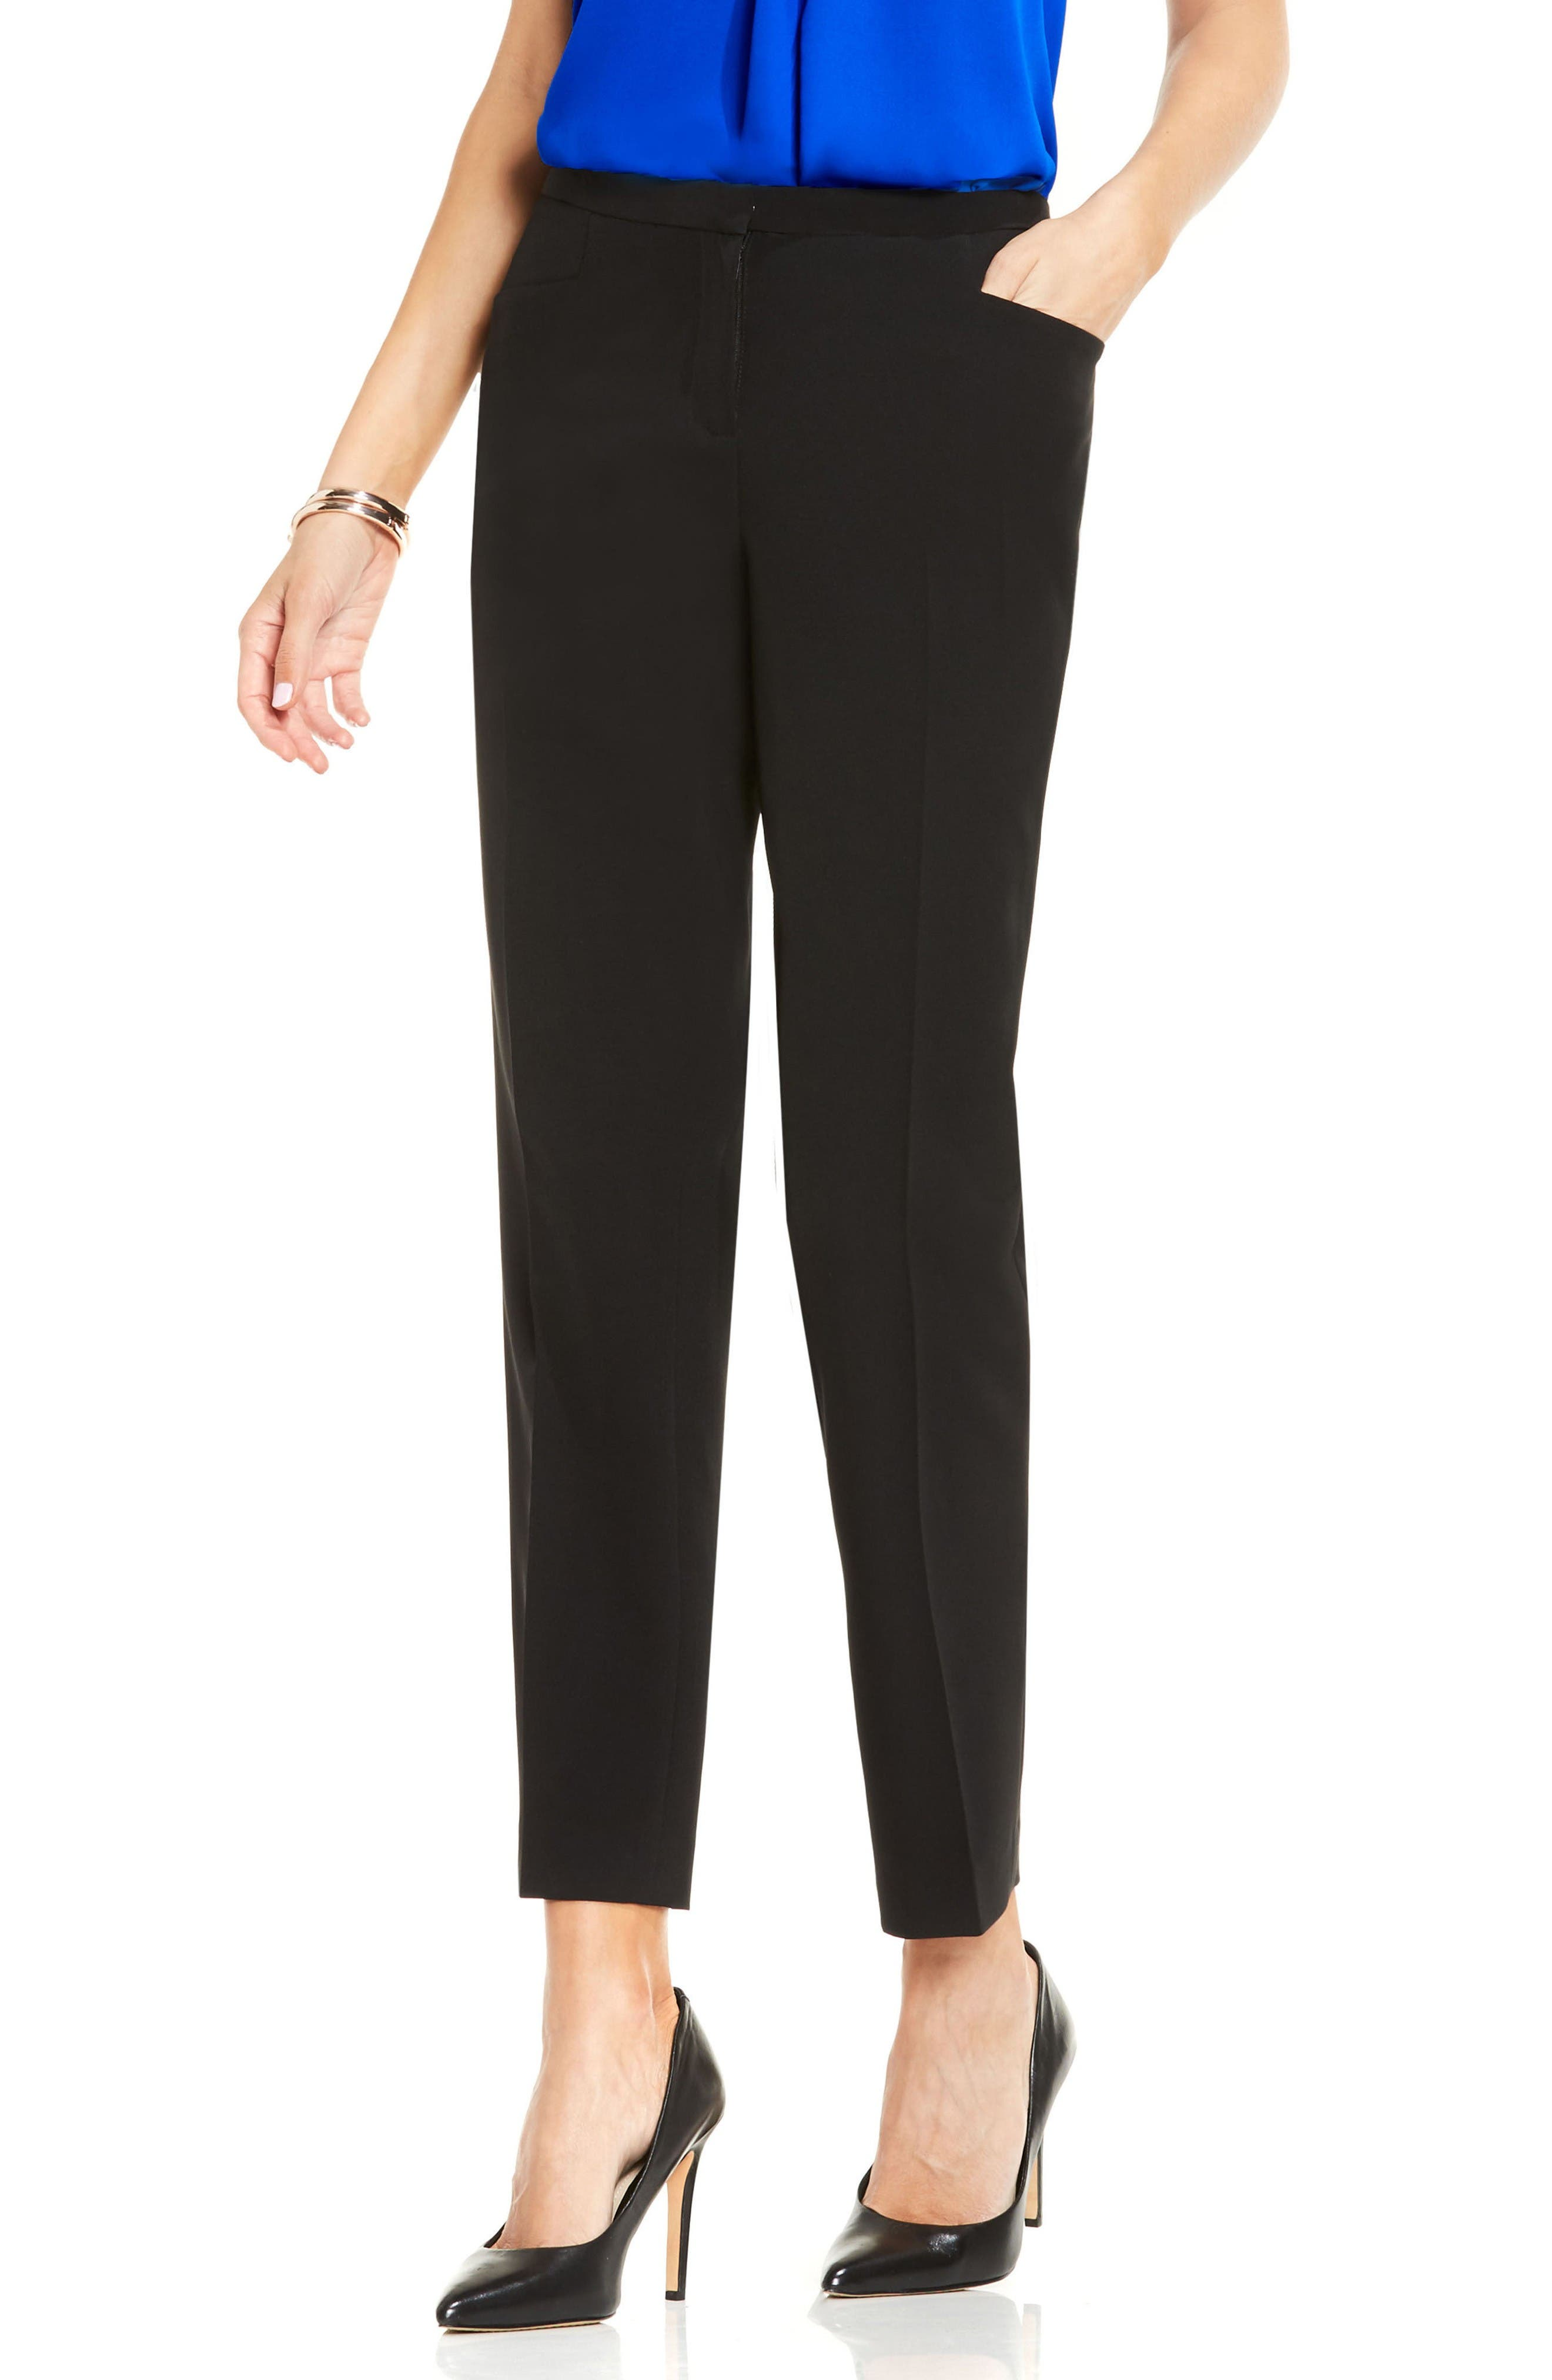 Main Image - Vince Camuto Stretch Twill Ankle Pants (Regular & Petite)